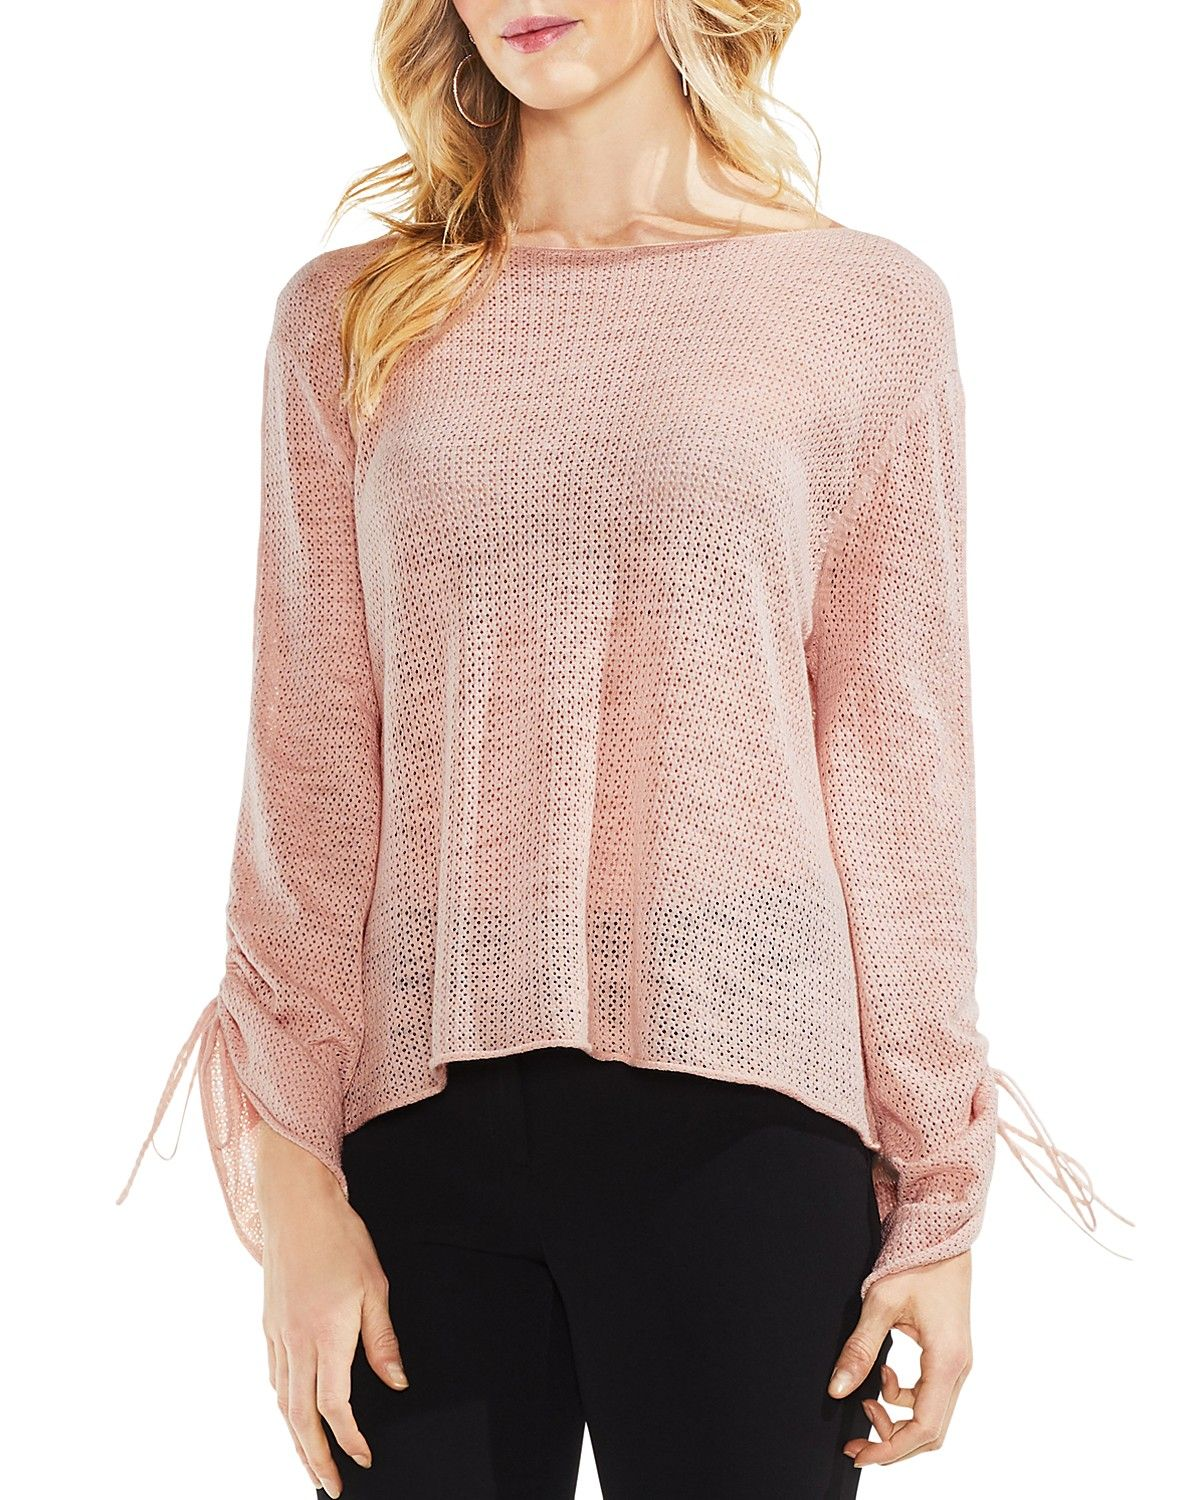 Pointelle Sweater, Sweaters